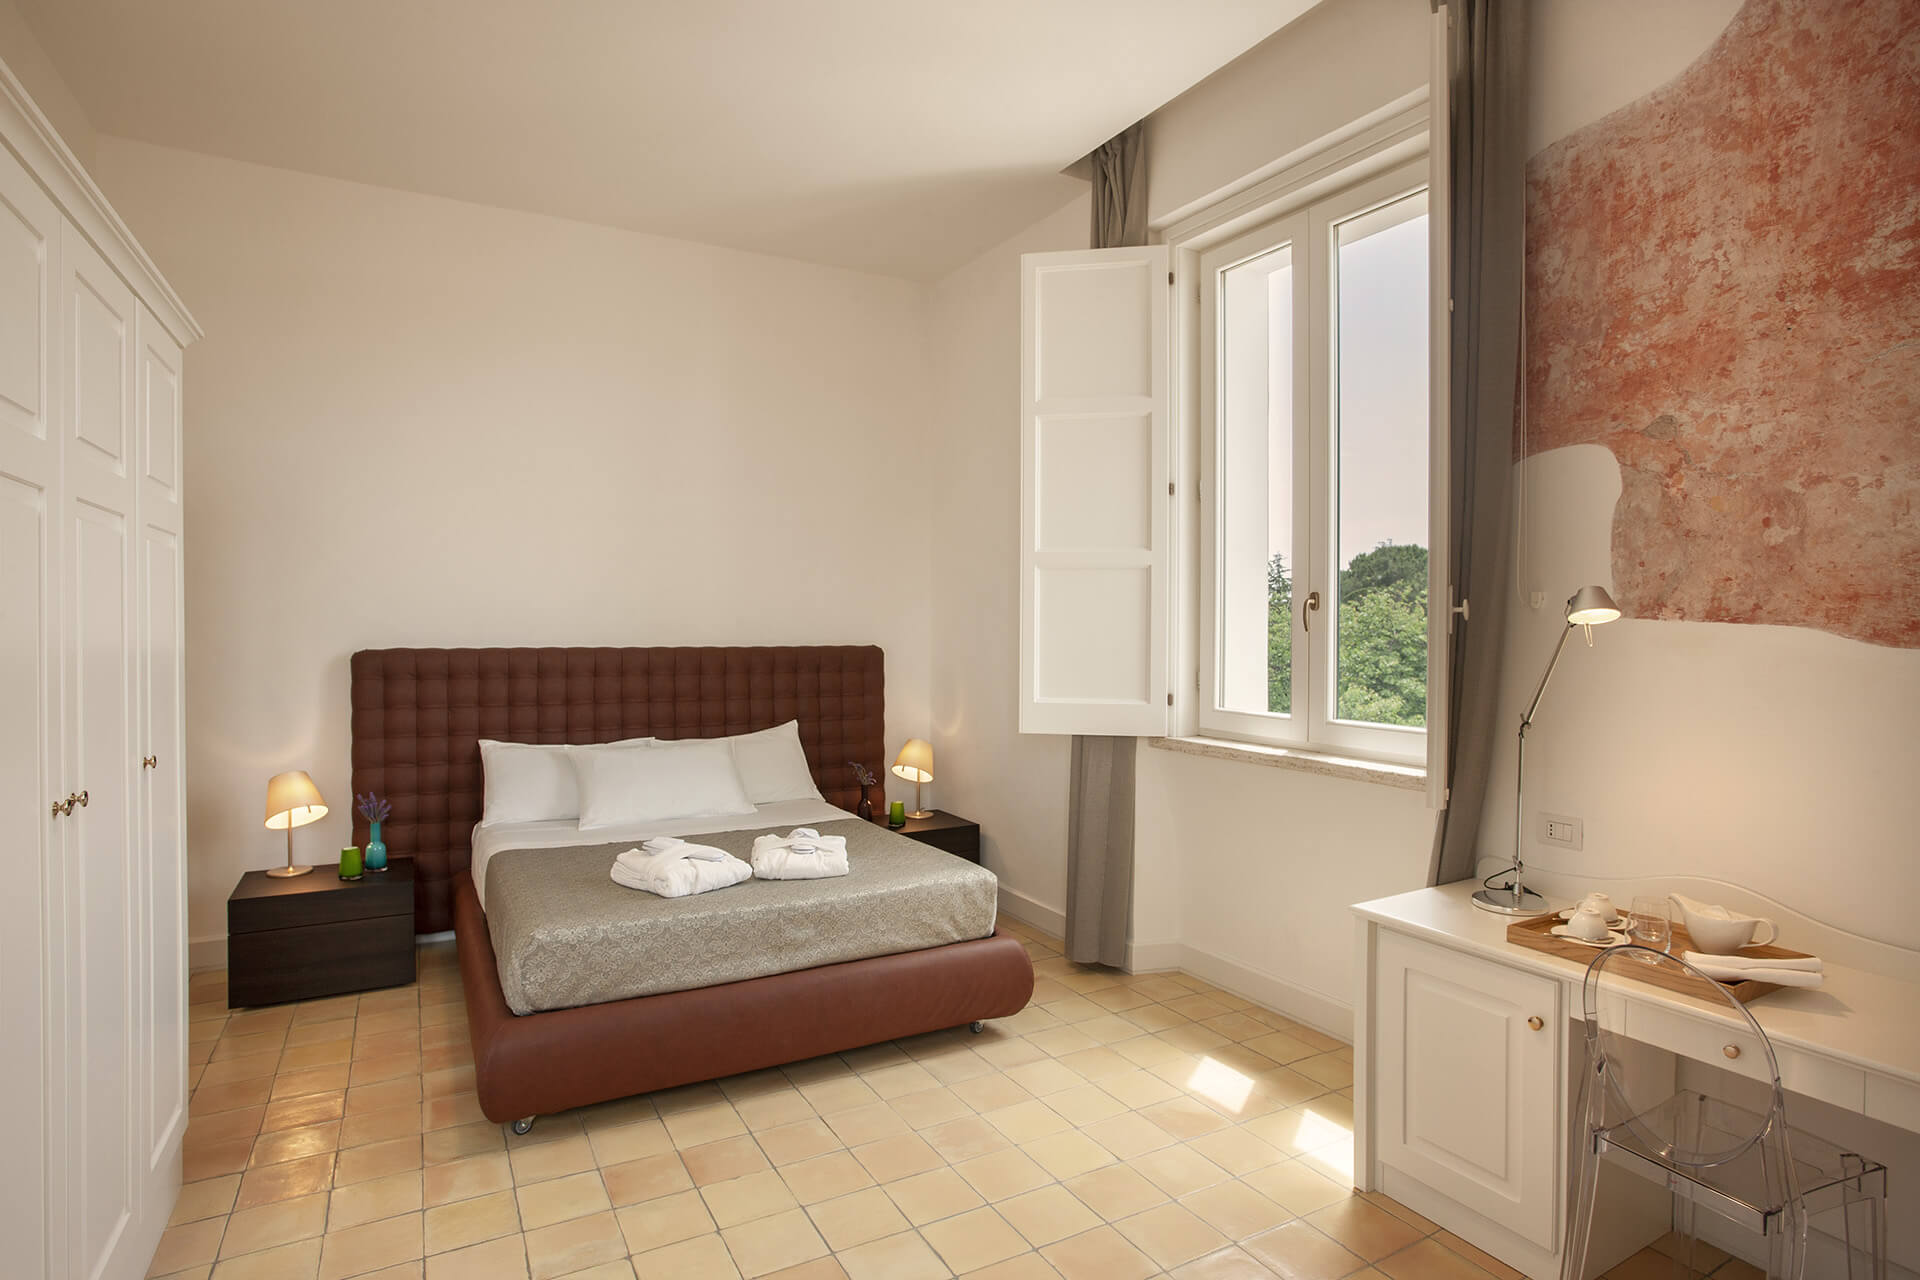 Rooms: The Rooms Of The 4-star Hotel In Paestum Tenuta Duca